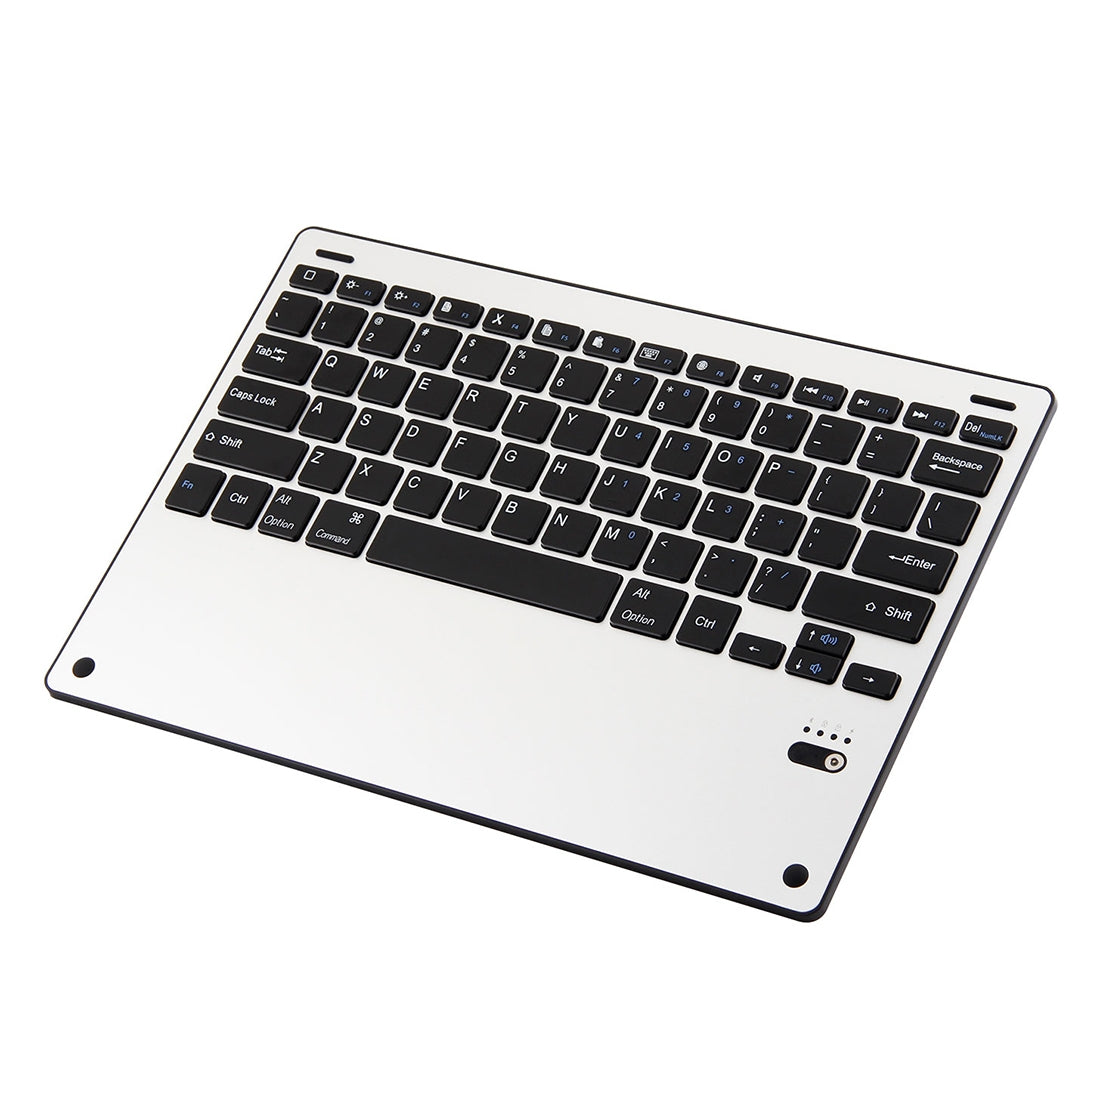 iPad Pro 12.9 inch (2018) Detachable Bluetooth 3.0 Aluminum Alloy Keyboard